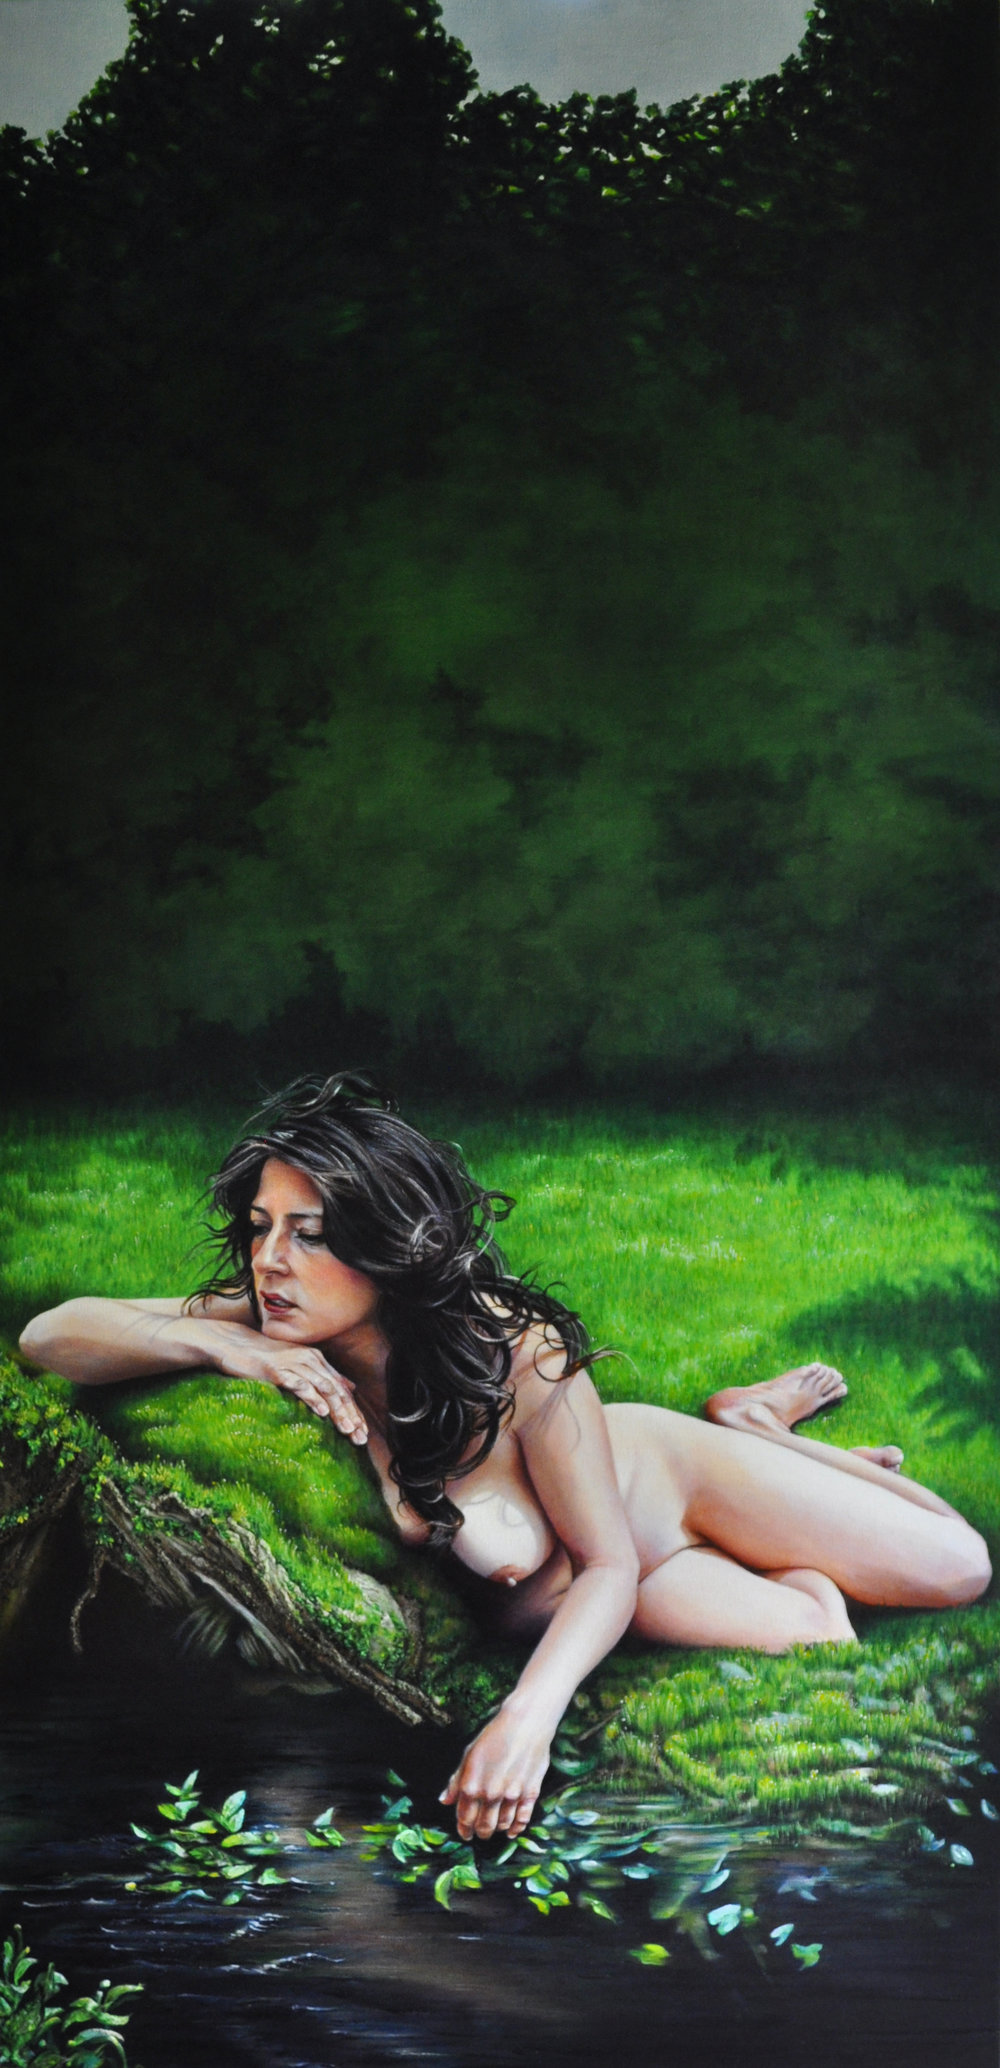 Victoria Selbach  |  Carmen in Pierreandorskatz  |  Acrylic on Canvas  |  70 x 34 inches or 177 ¾ x 86 ¼ cm